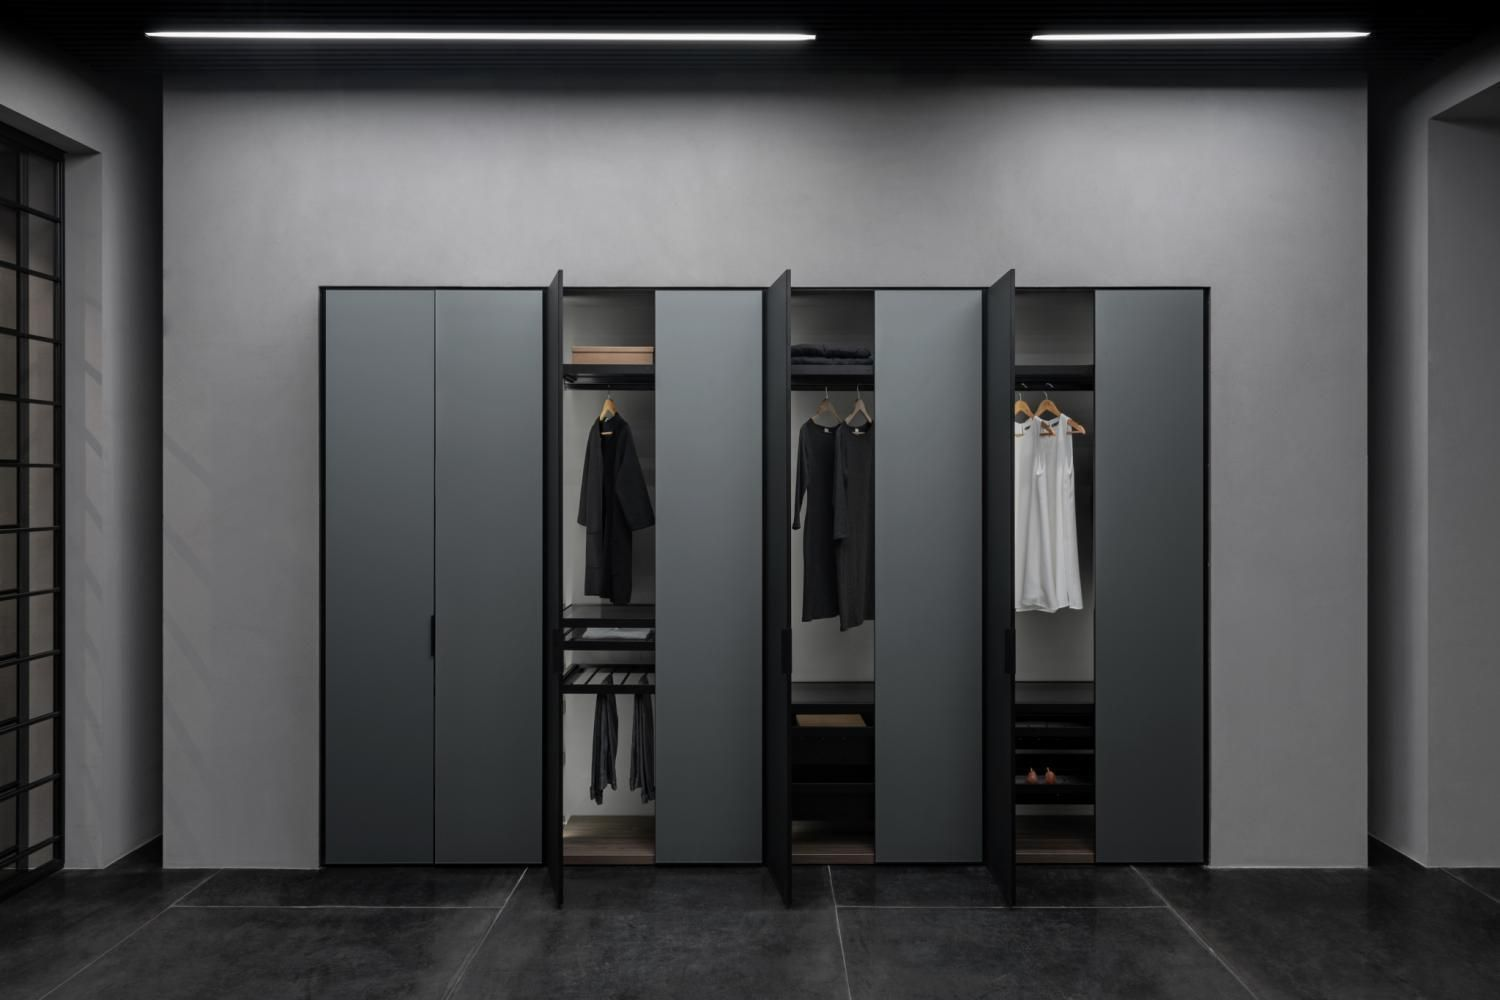 Built-in walk-in wardrobe AMPIO Doors. Aluminum profile Black Matt Color. Facade Slim glass Metallic Satin Grey. Aluminum shelves with glass.